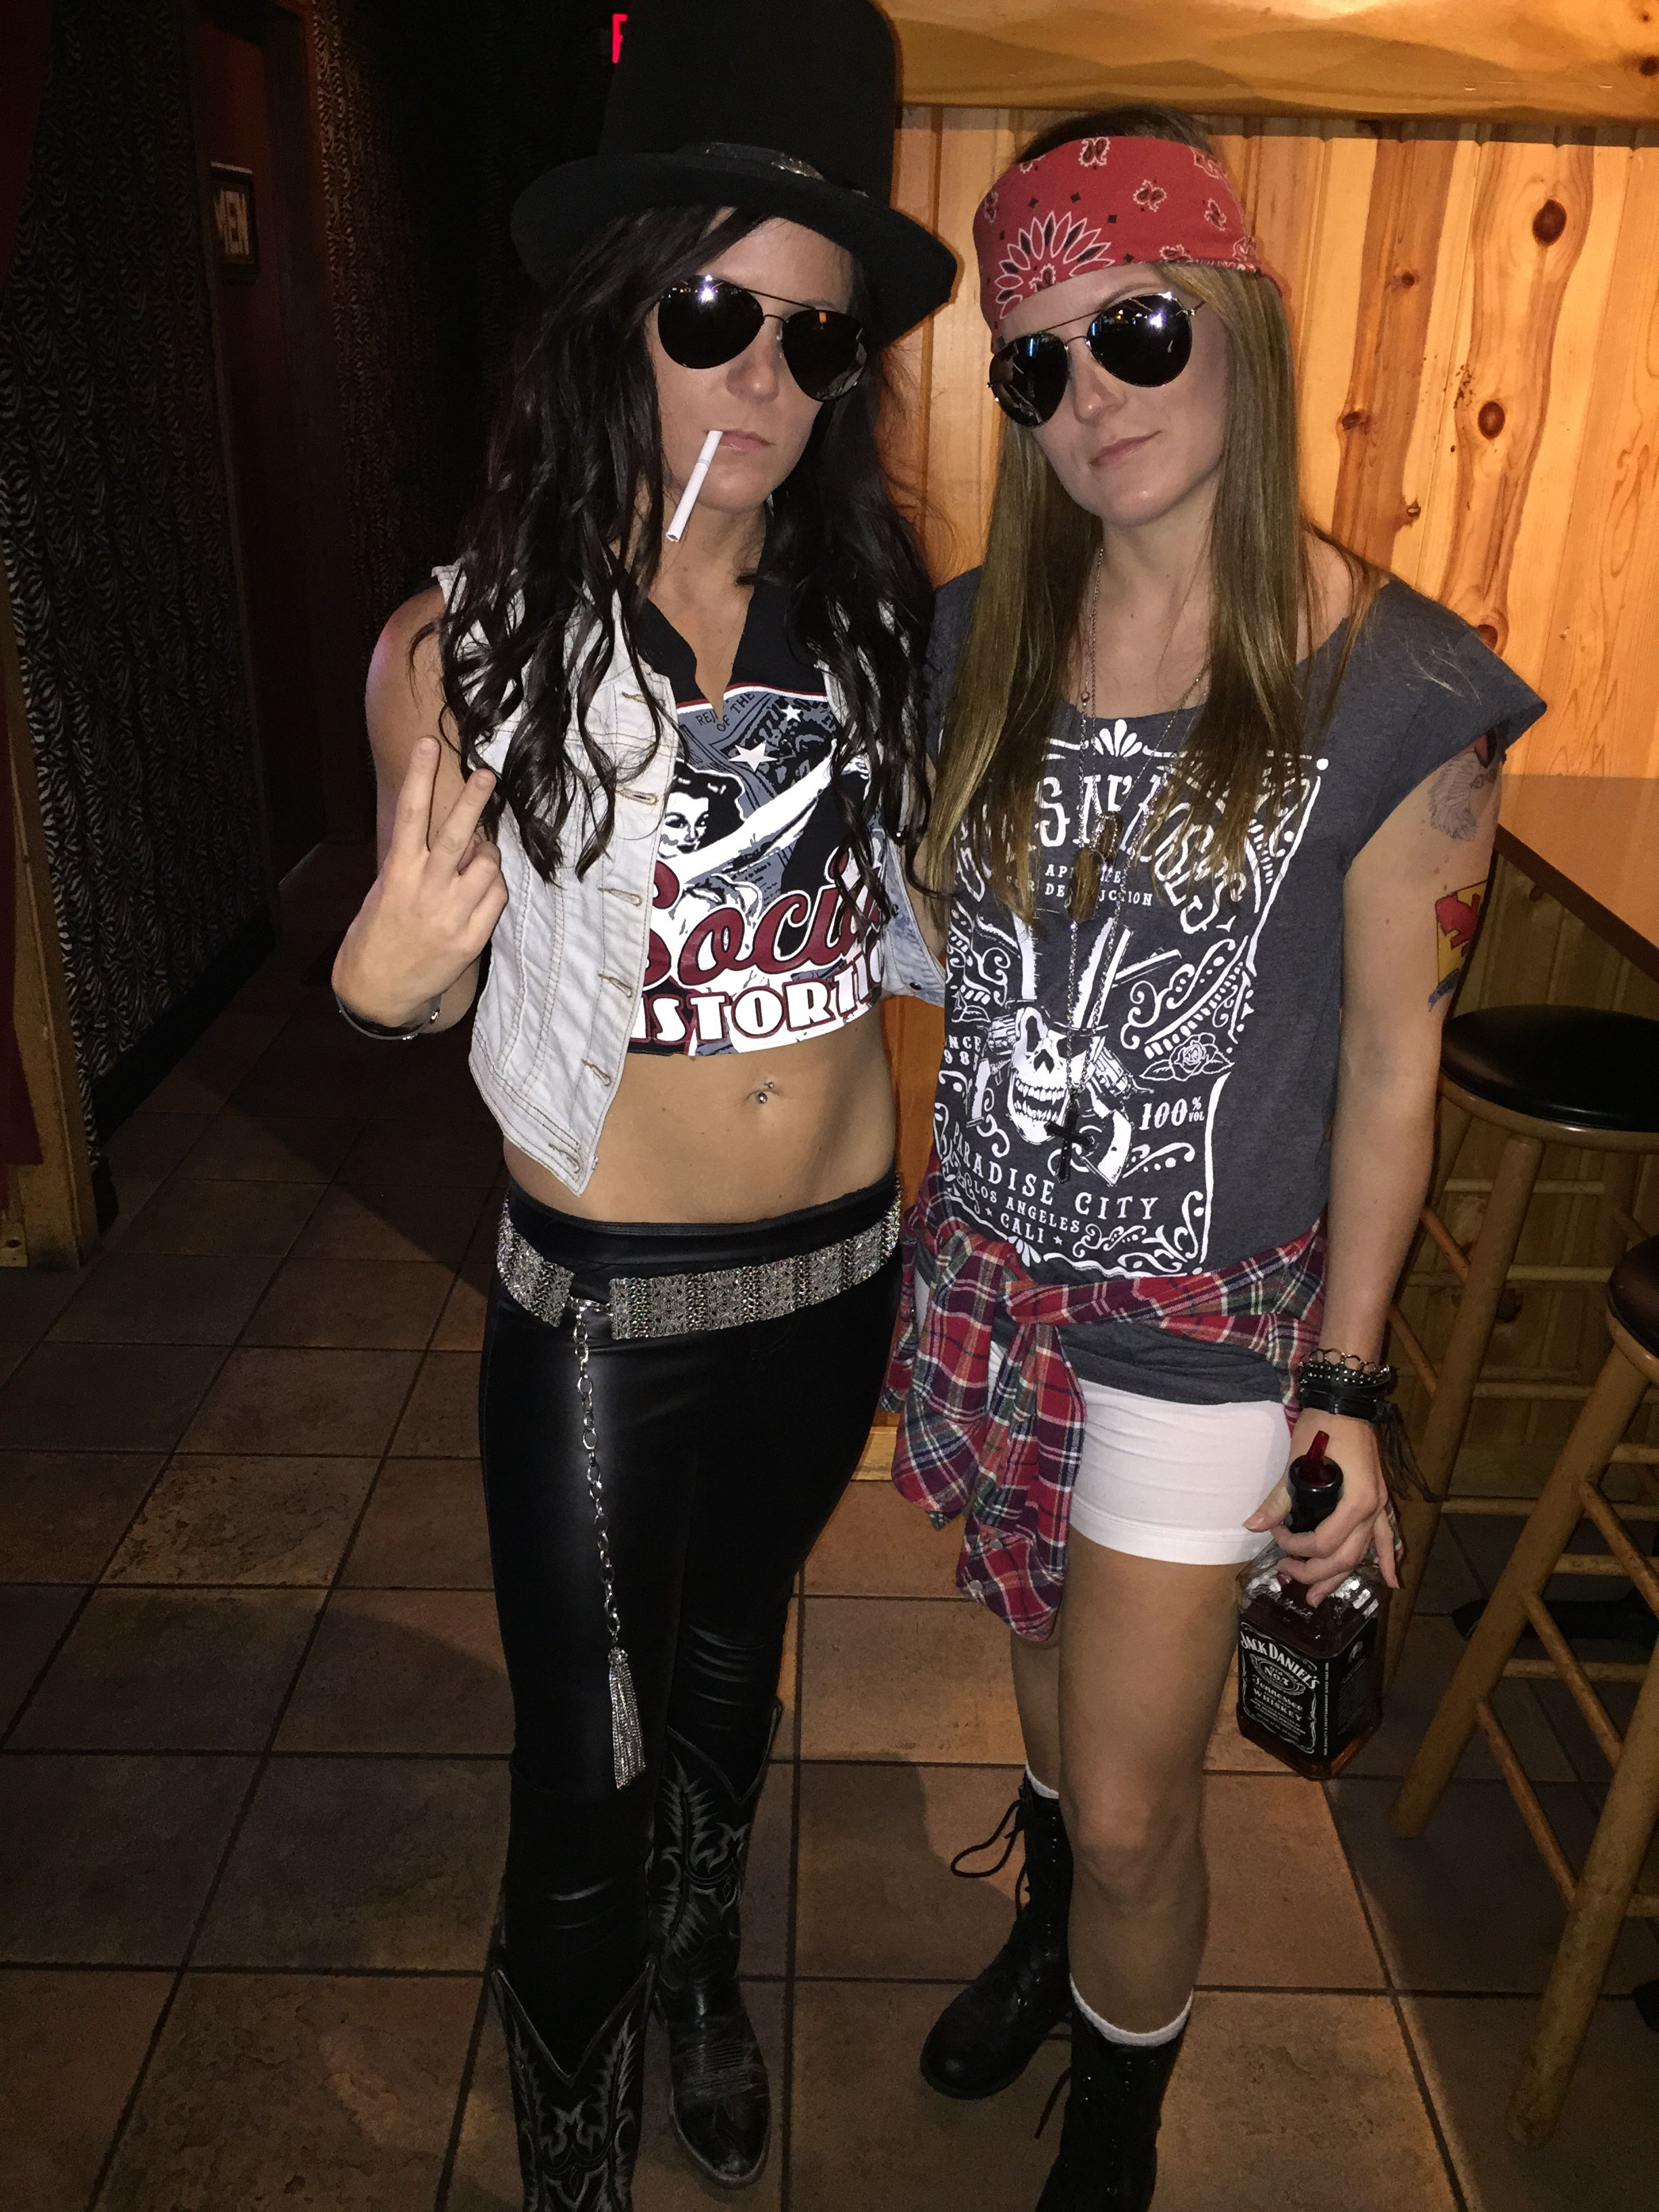 Axl Rose and Slash for Halloween! When your costume is on